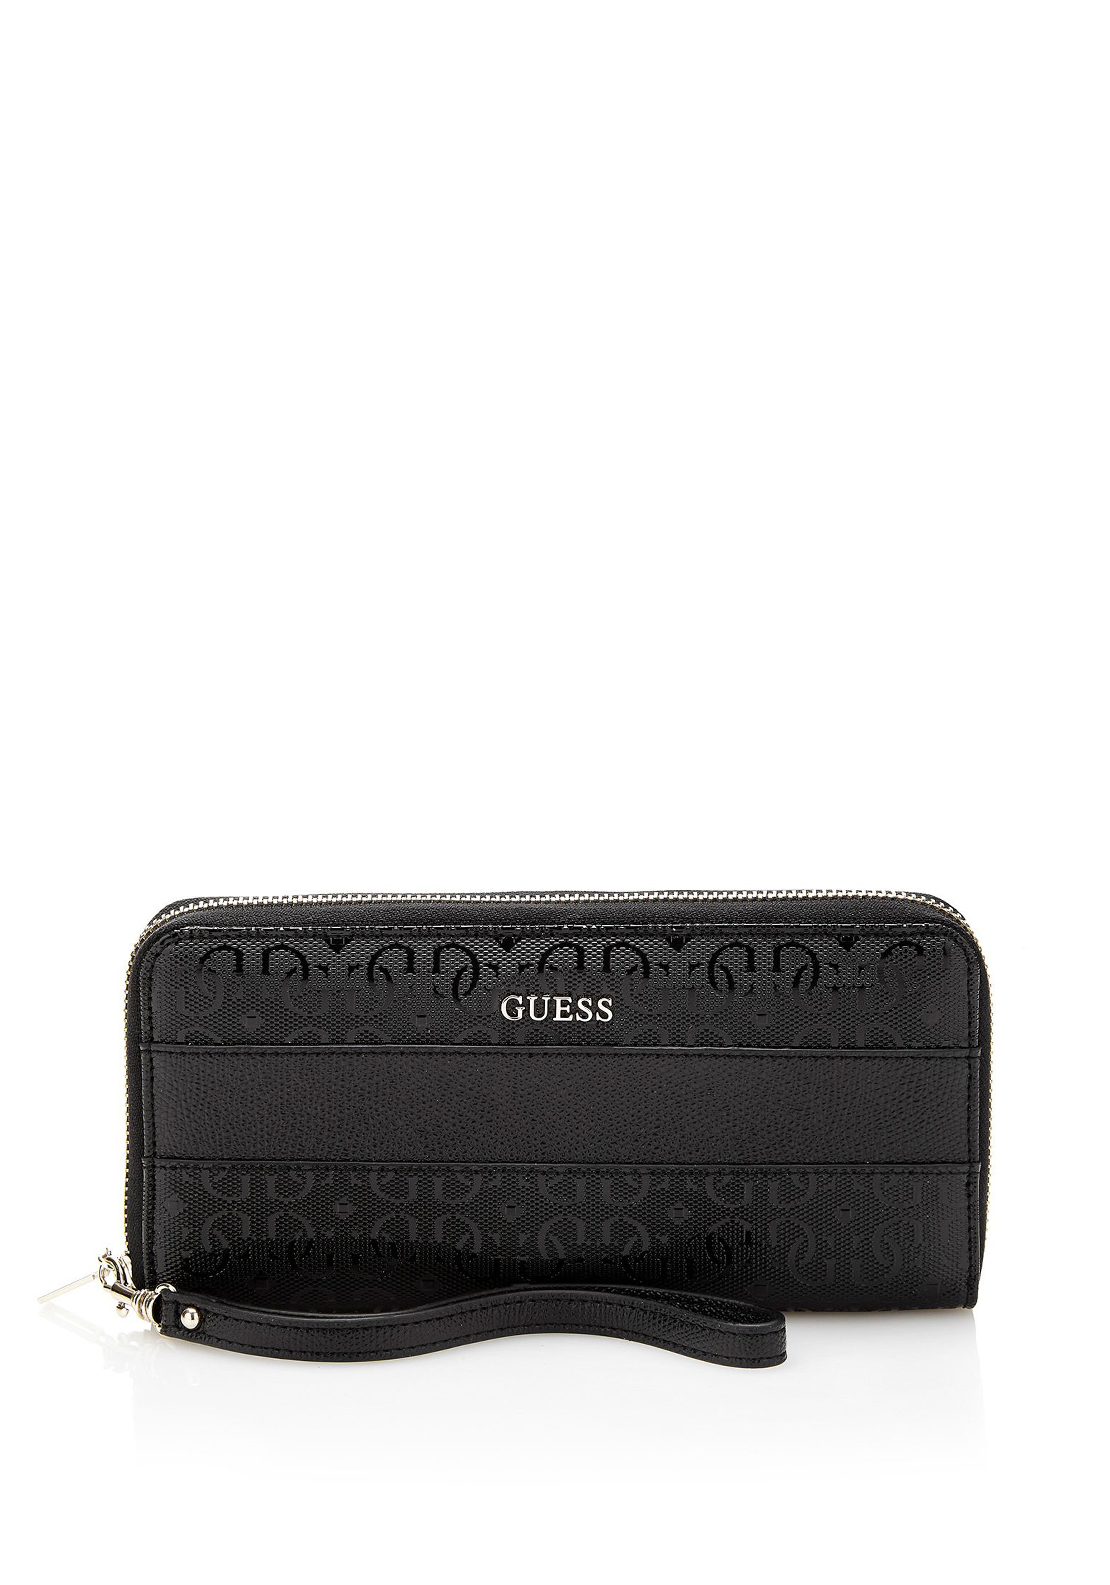 Guess Janette Zip around Large Wristlet Purse, Black